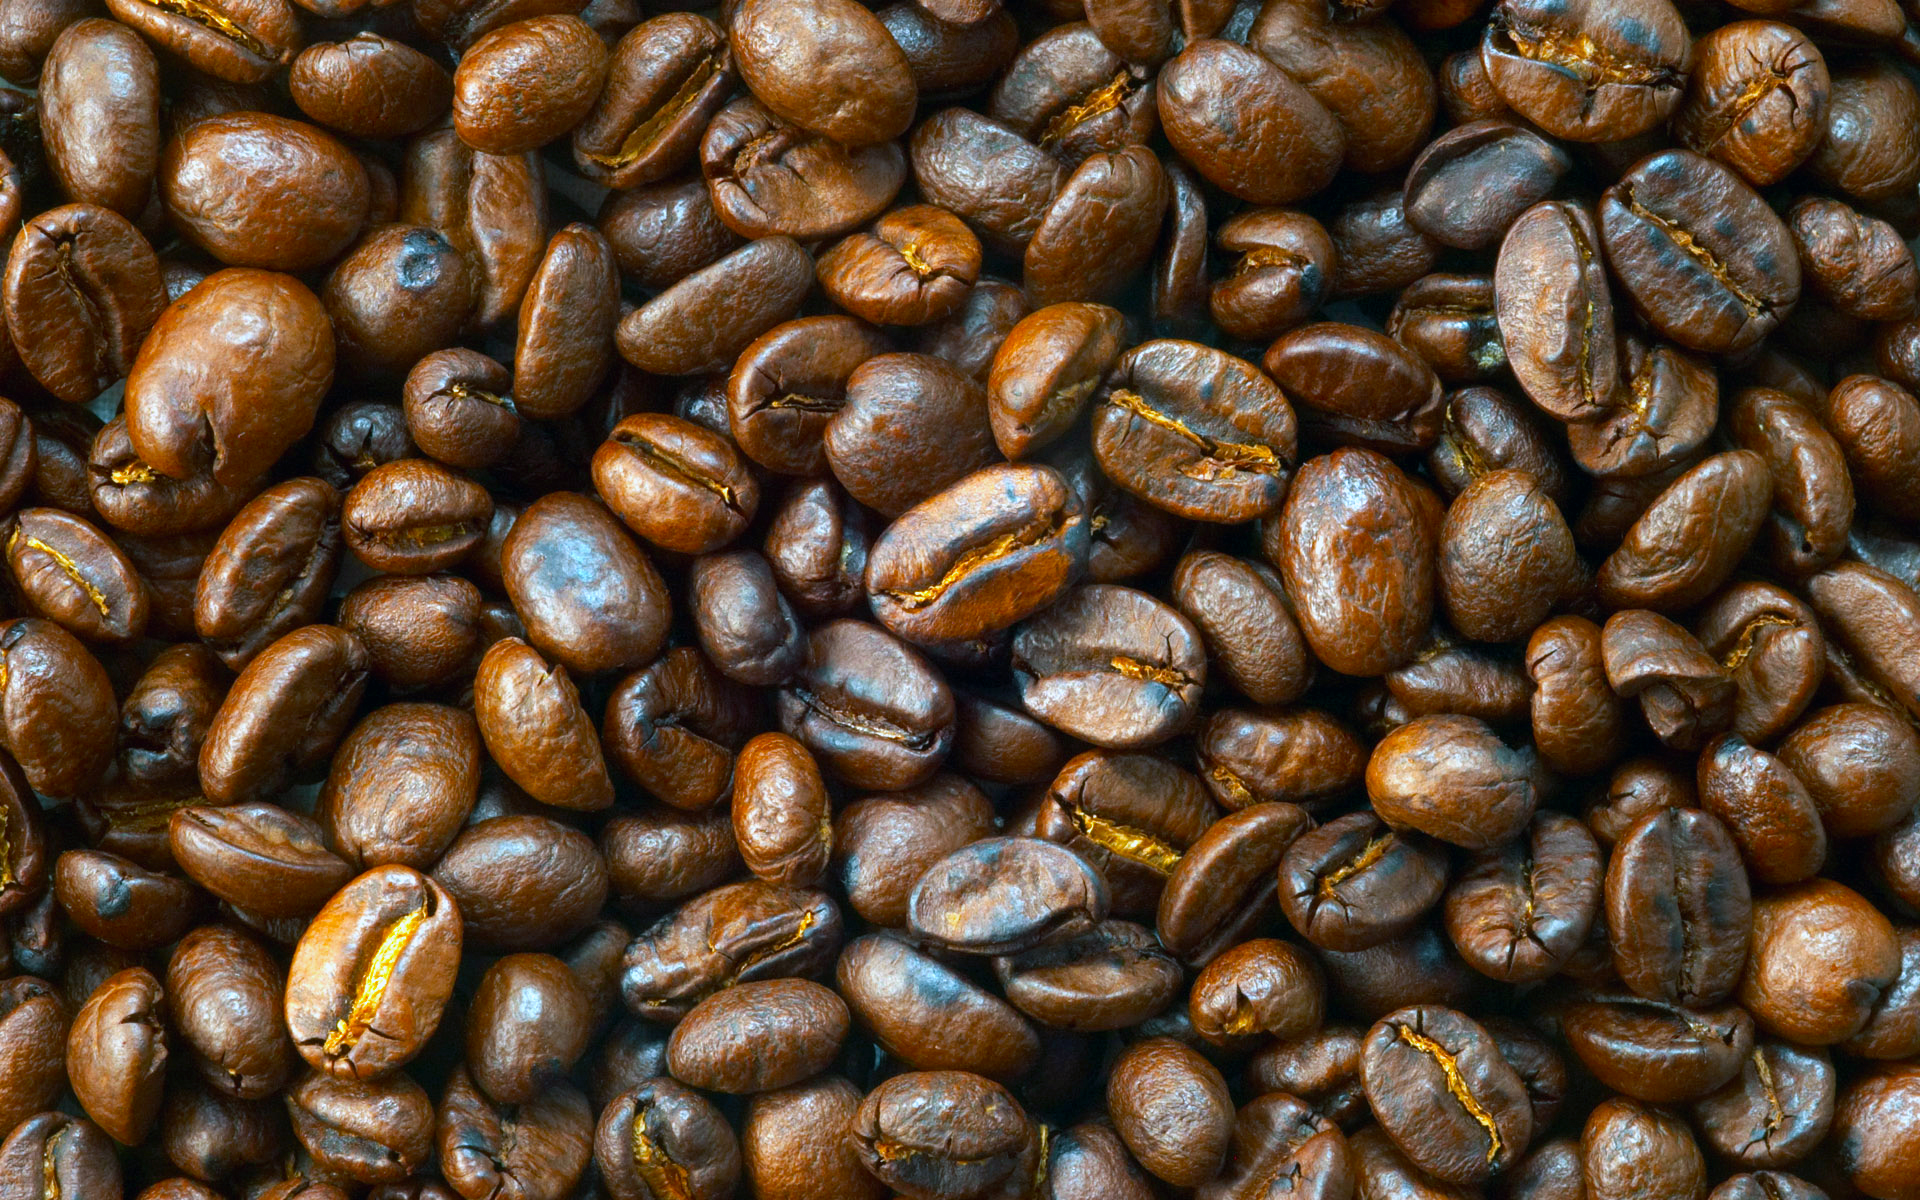 Freshly roasted coffee beans from our supplier